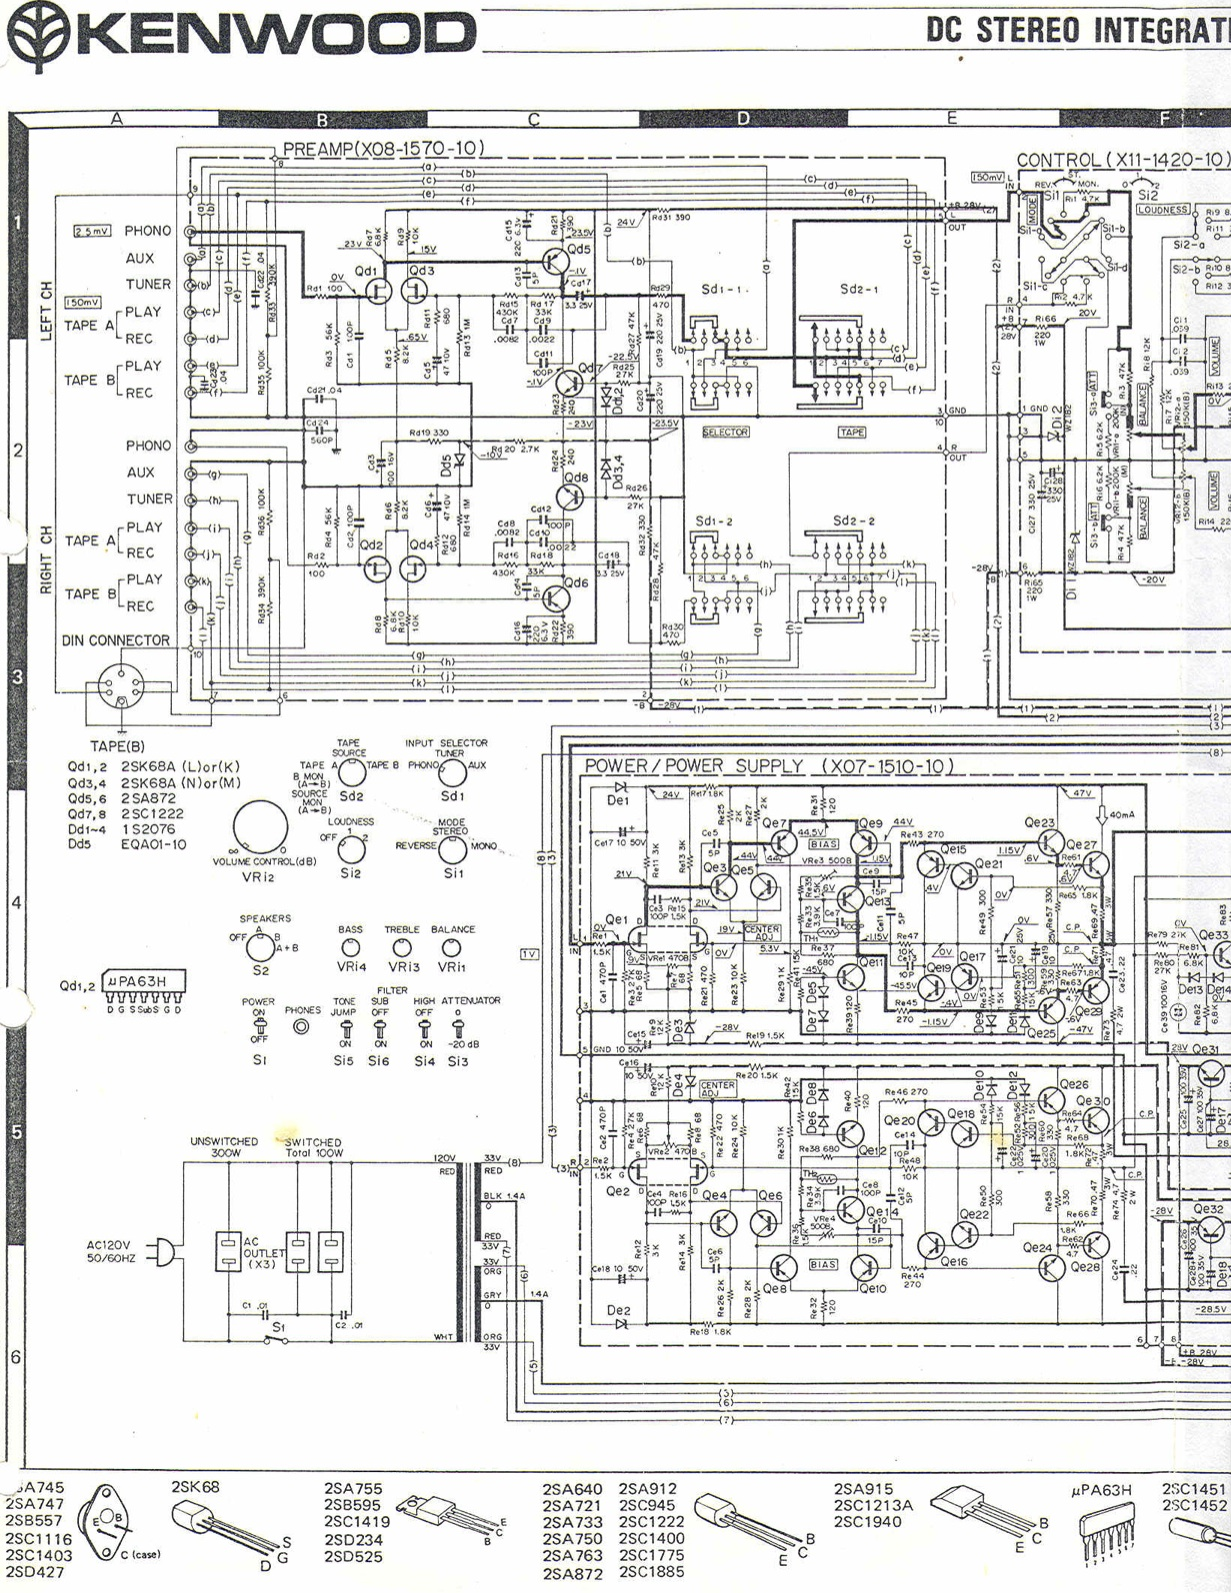 Dometic Duo Therm Wiring Diagrams furthermore Central Air Conditioner Schematic furthermore York Defrost Wiring Diagram further Electrical Interlock Wiring Diagram further Ac Motor Wiring Diagram. on carrier contactor wiring diagram